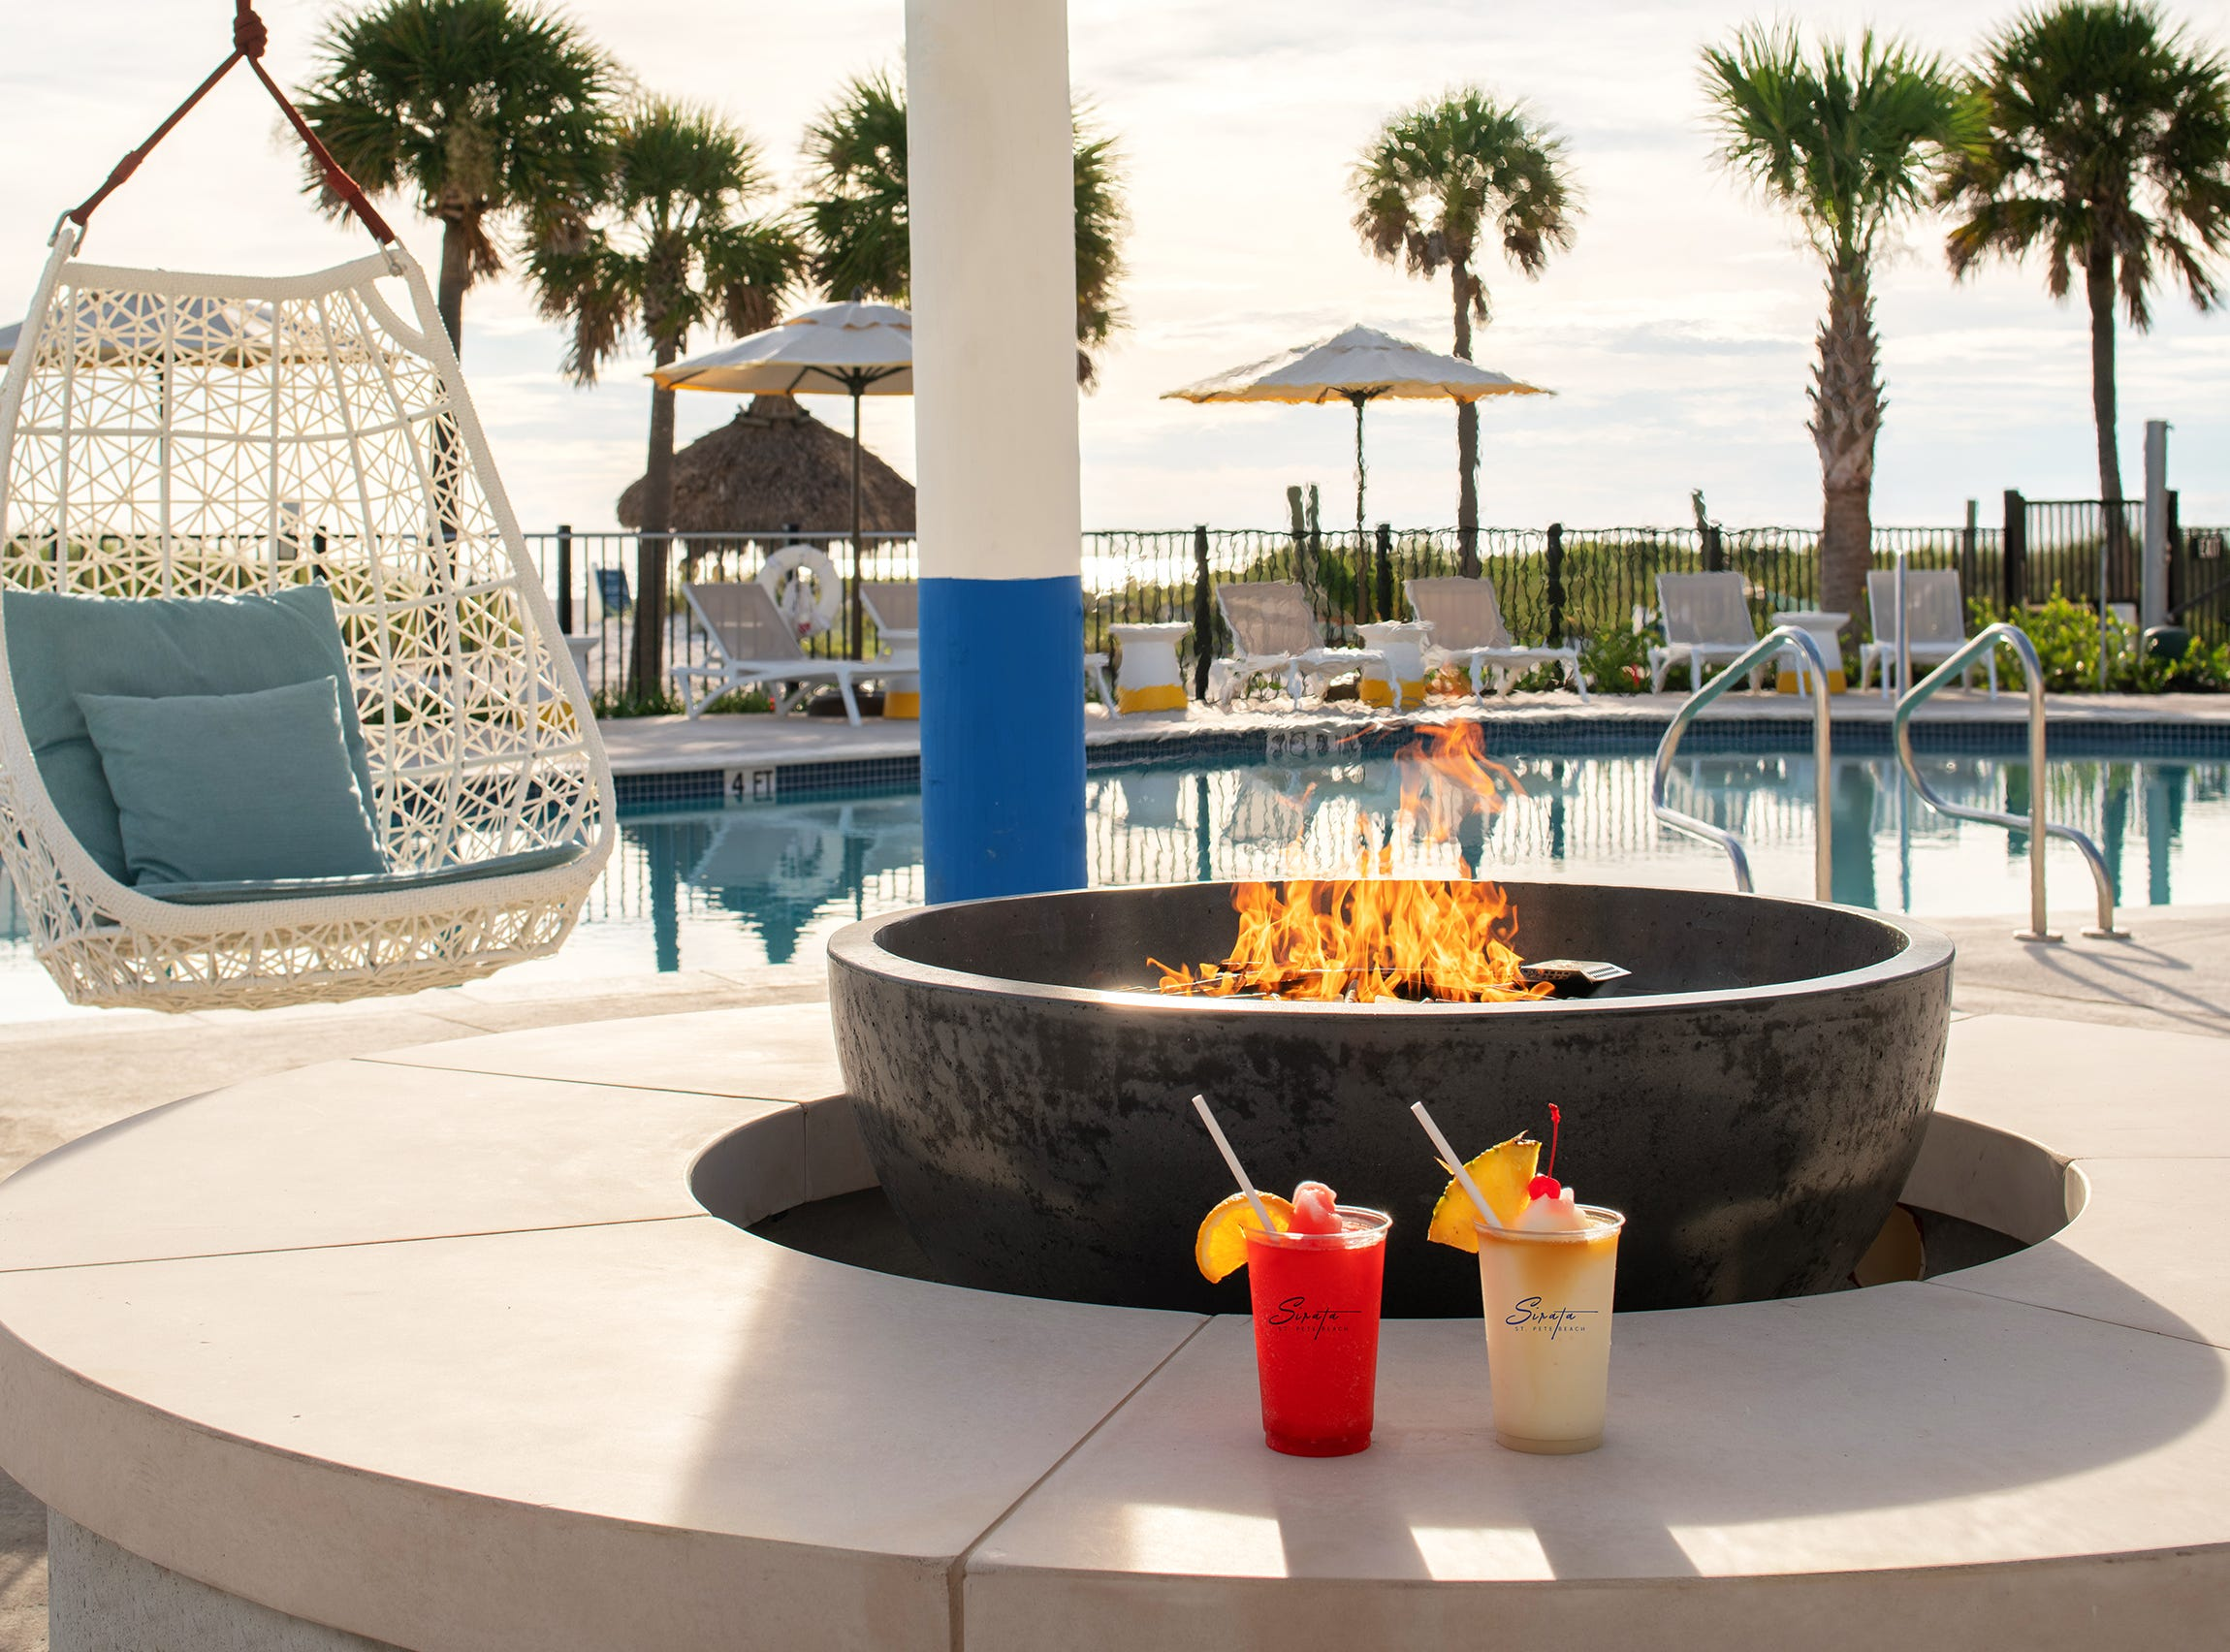 Sirata Beach Resort in St. Pete, Florida, has a new fire pit by the north pool.